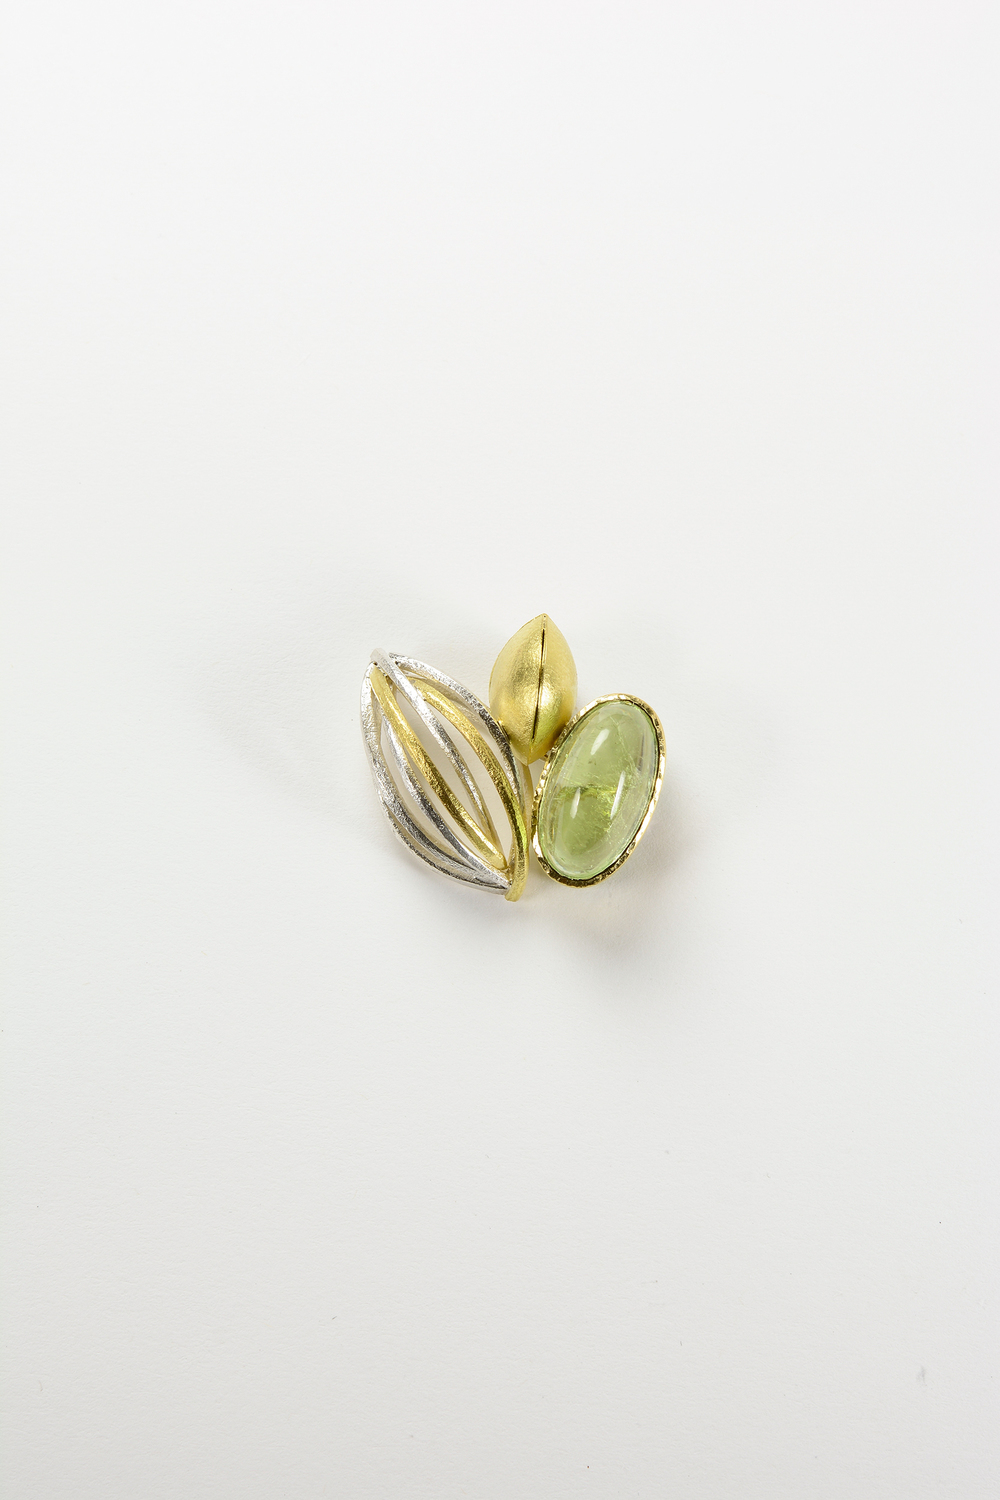 tide pool pin . 18ky gold sterling silver 9.40 ct tourmaline - 1600.00